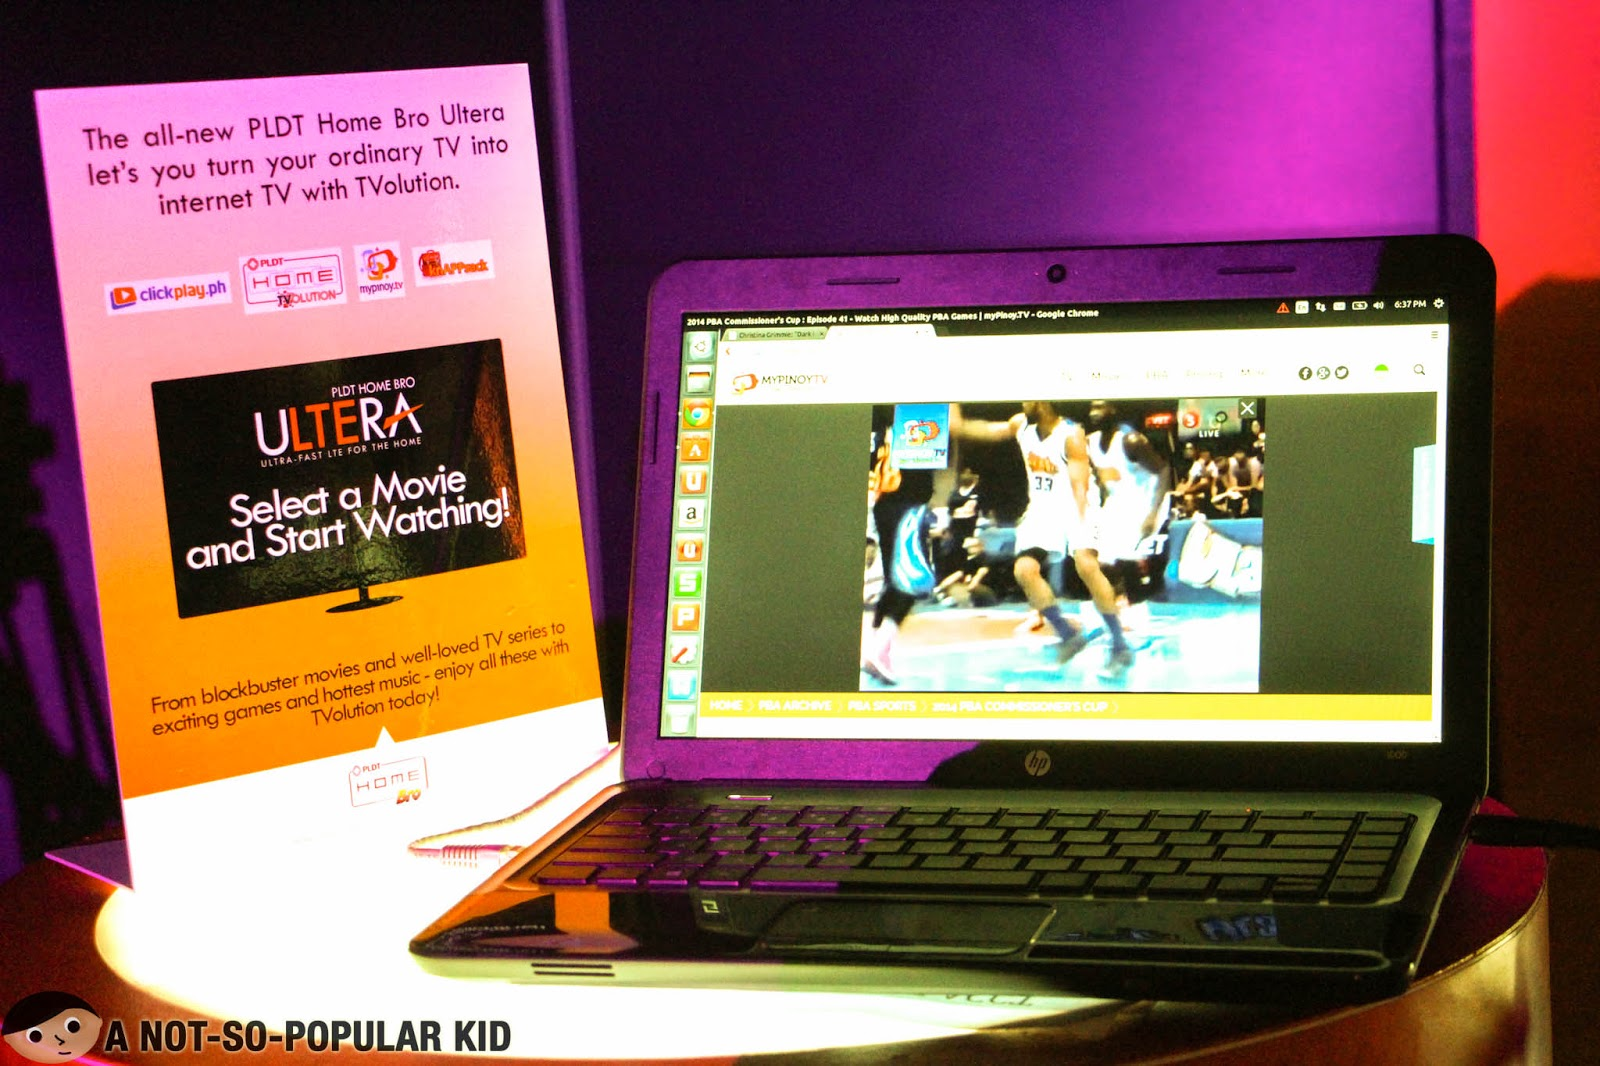 PLDT Home Bro Ultera makes streaming ultra fast as well